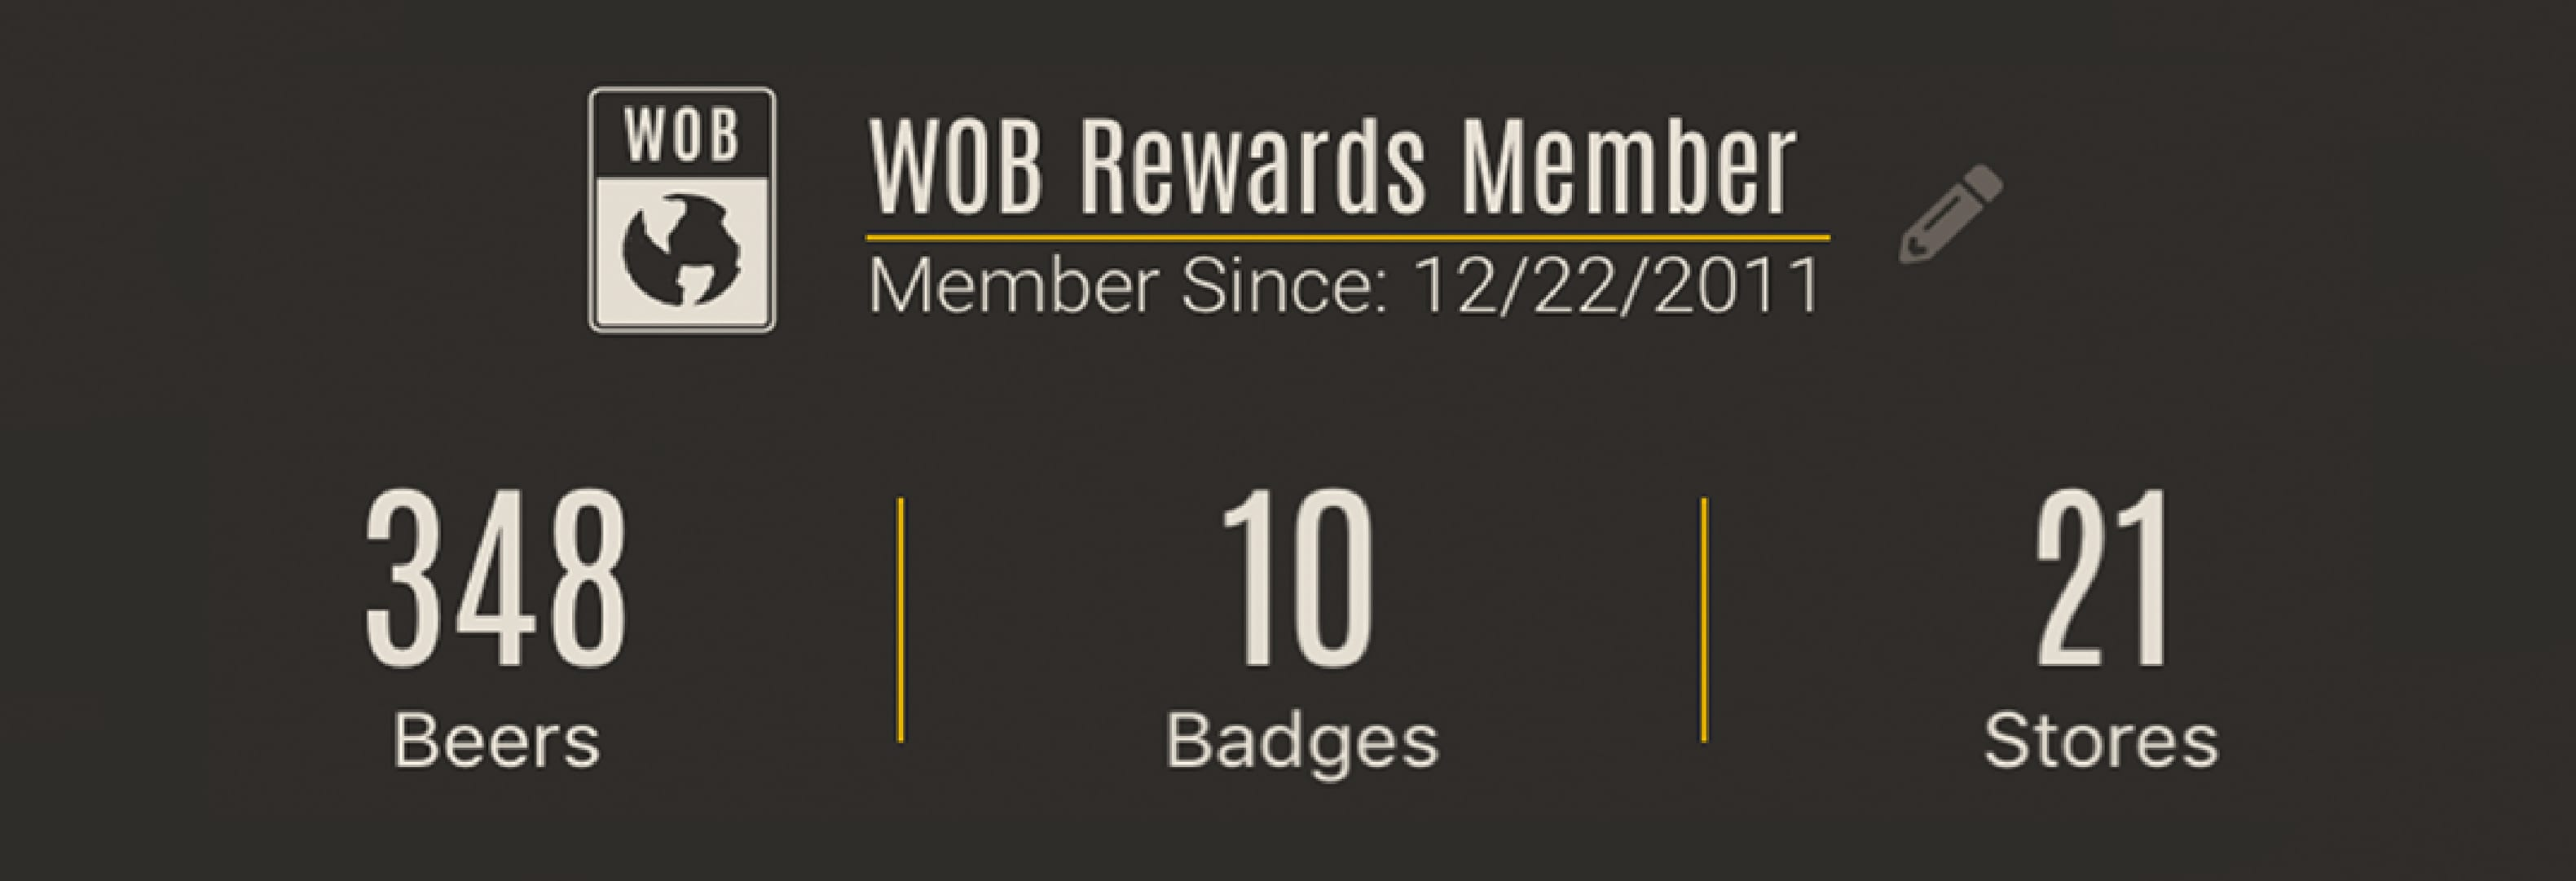 WOB Rewards Member information screenshot